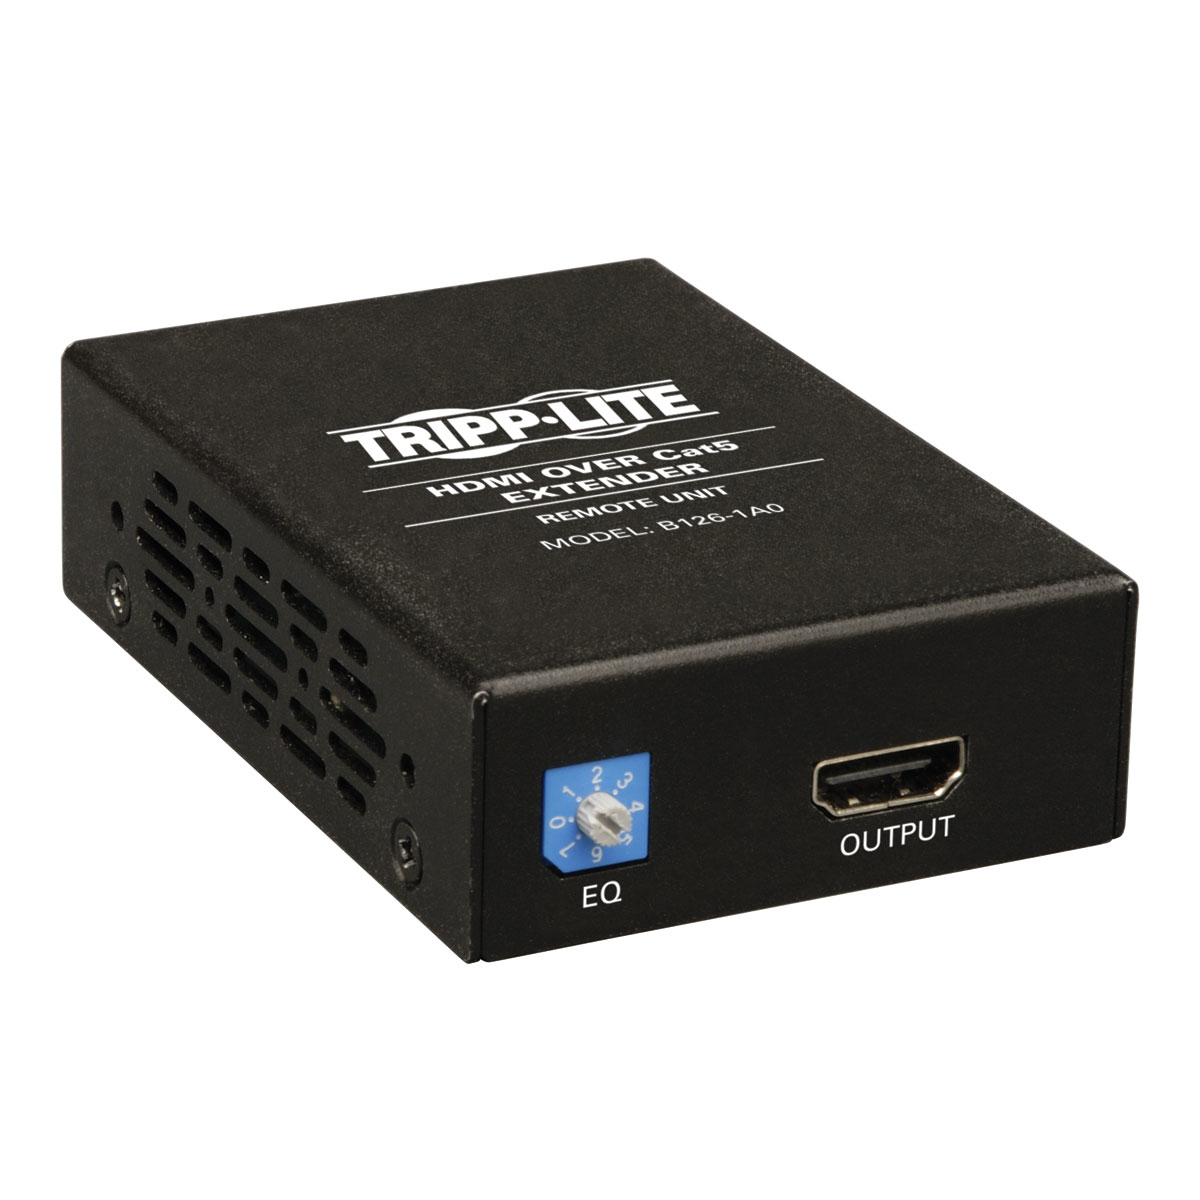 TRIPP LITE HDMI OVER CAT5/6 ACTIVE EXTENDER